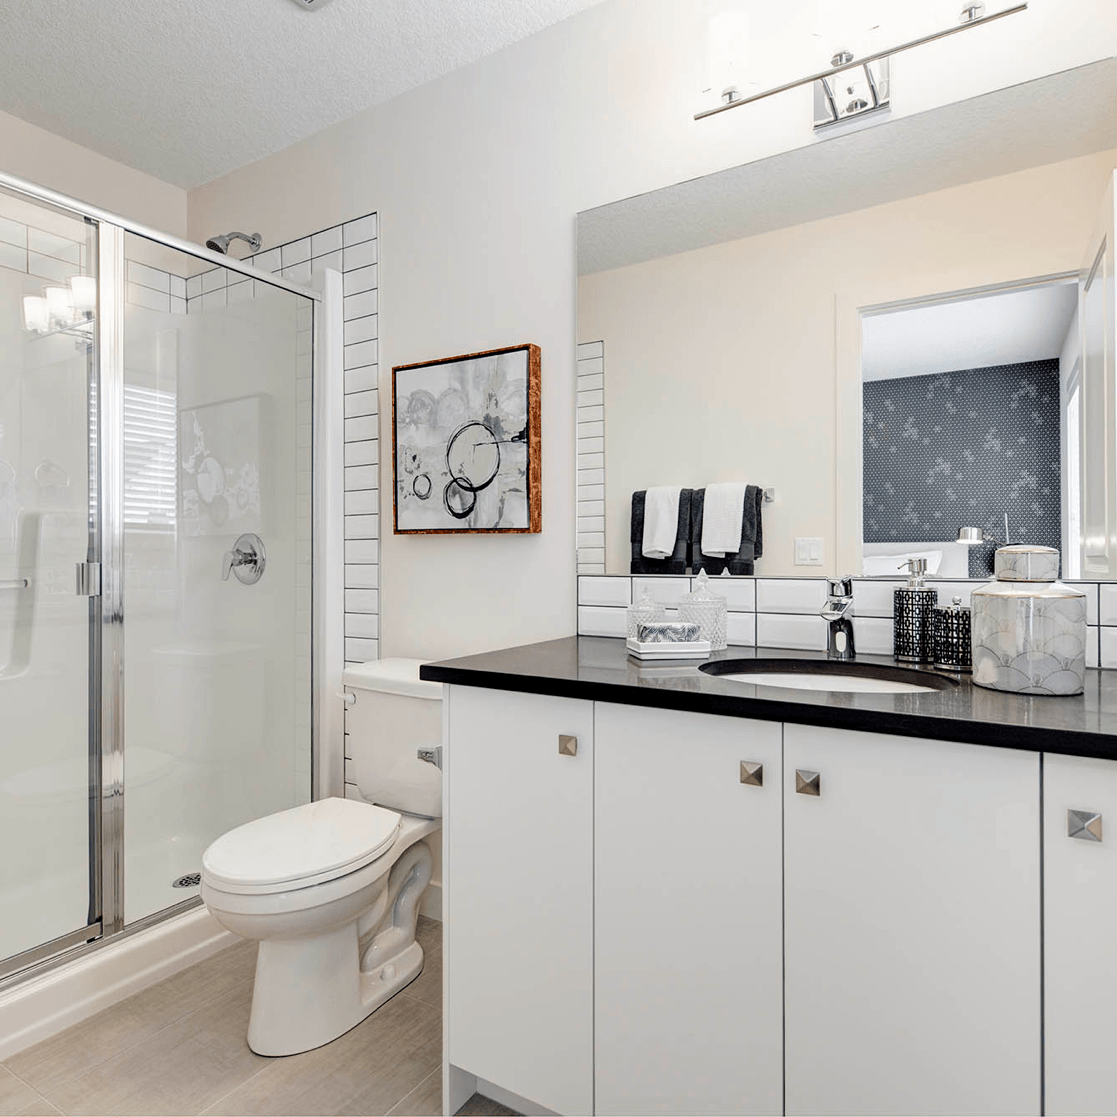 Comparing Value: Choosing the Right Options To Personalize Your Home Bright Ensuite Image